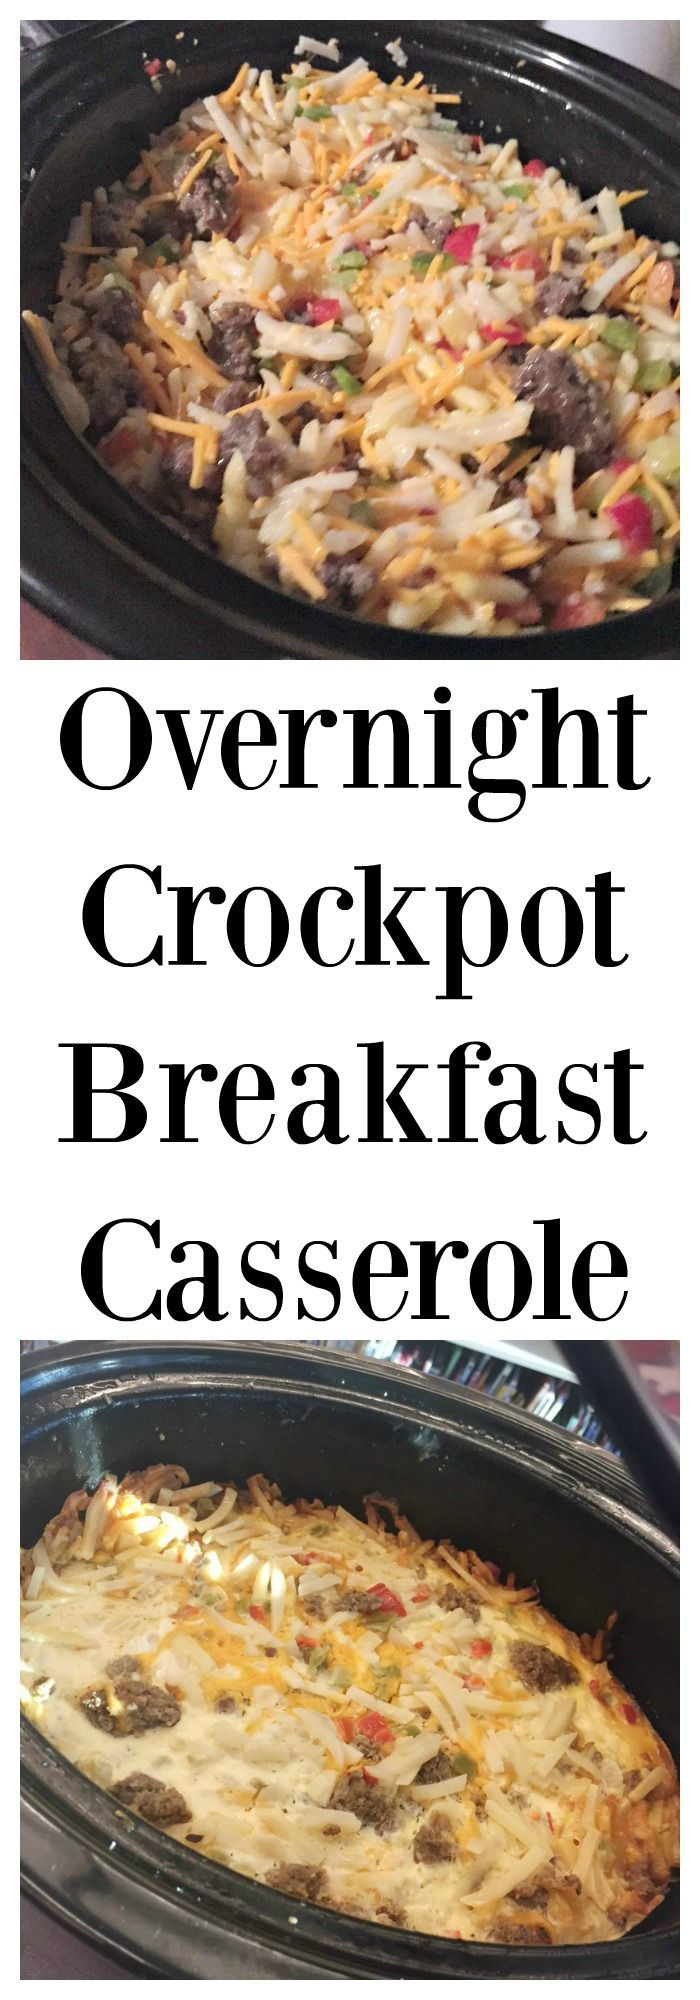 Make this easy Overnight Crockpot Breakfast Casserole